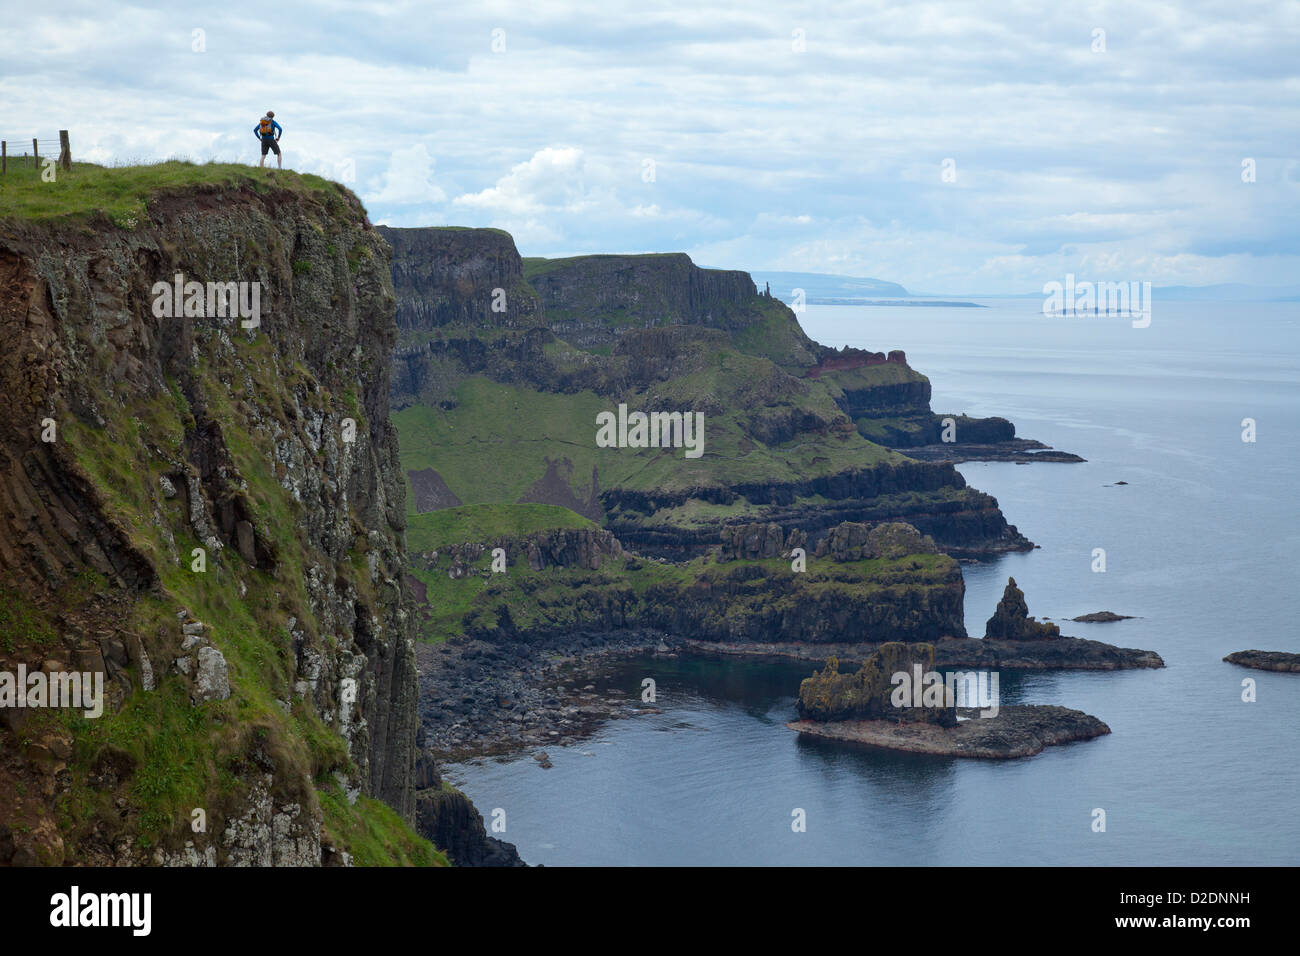 Walker on top of Benbane Head, on the Causeway Coast Way walking trail, County Antrim, Northern Ireland. Stock Photo